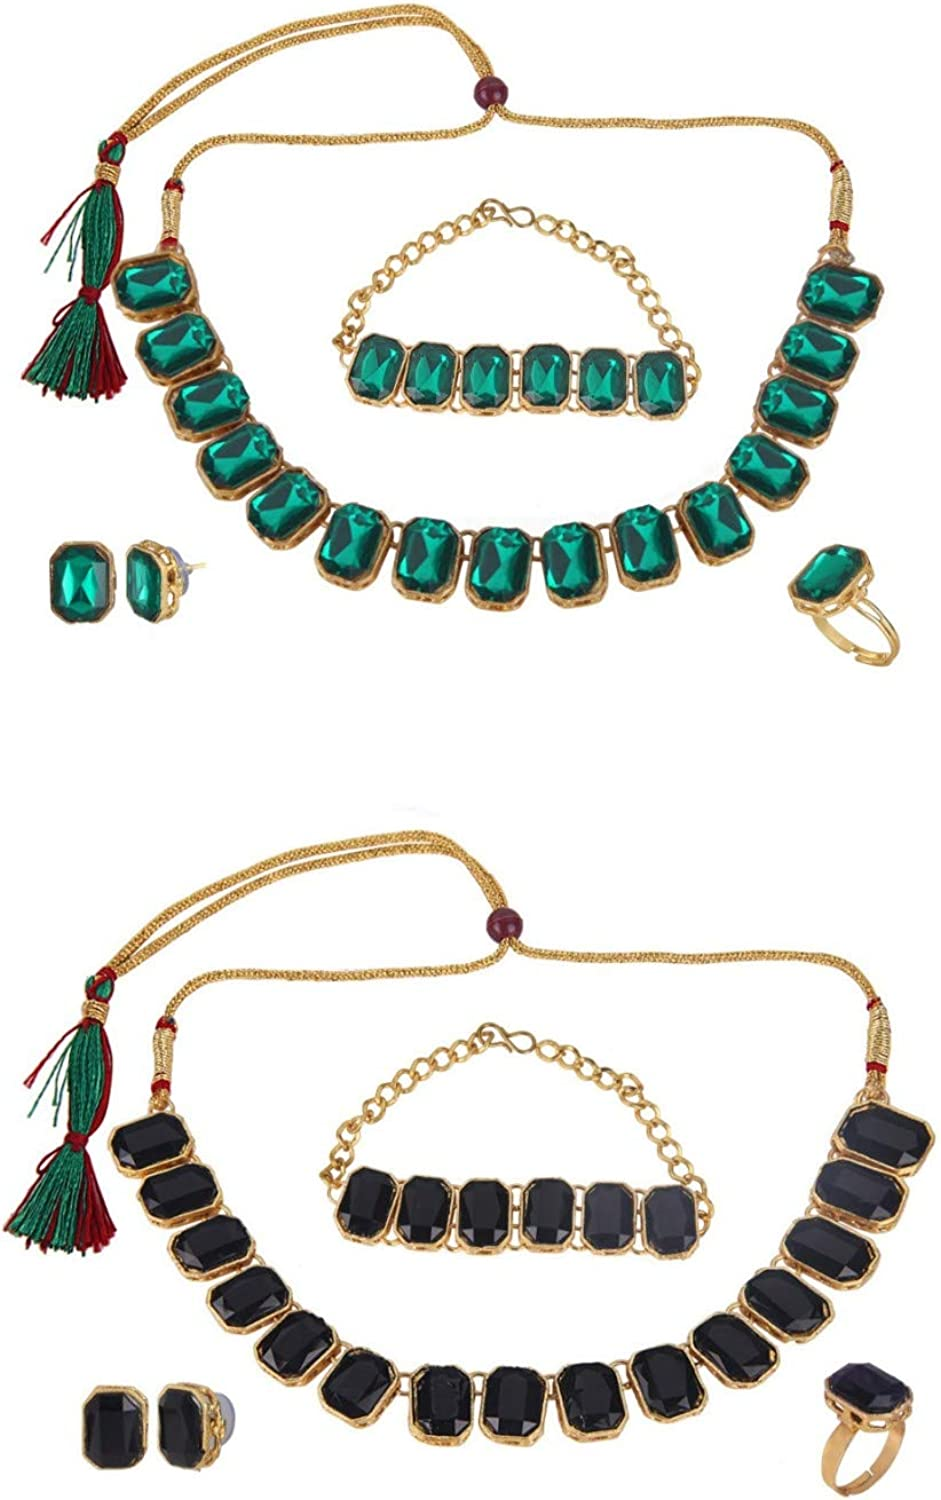 Efulgenz Crystal Oxidized Statement Choker Necklace Earrings Bracelet and Rings 2 Sets Costume Jewelry